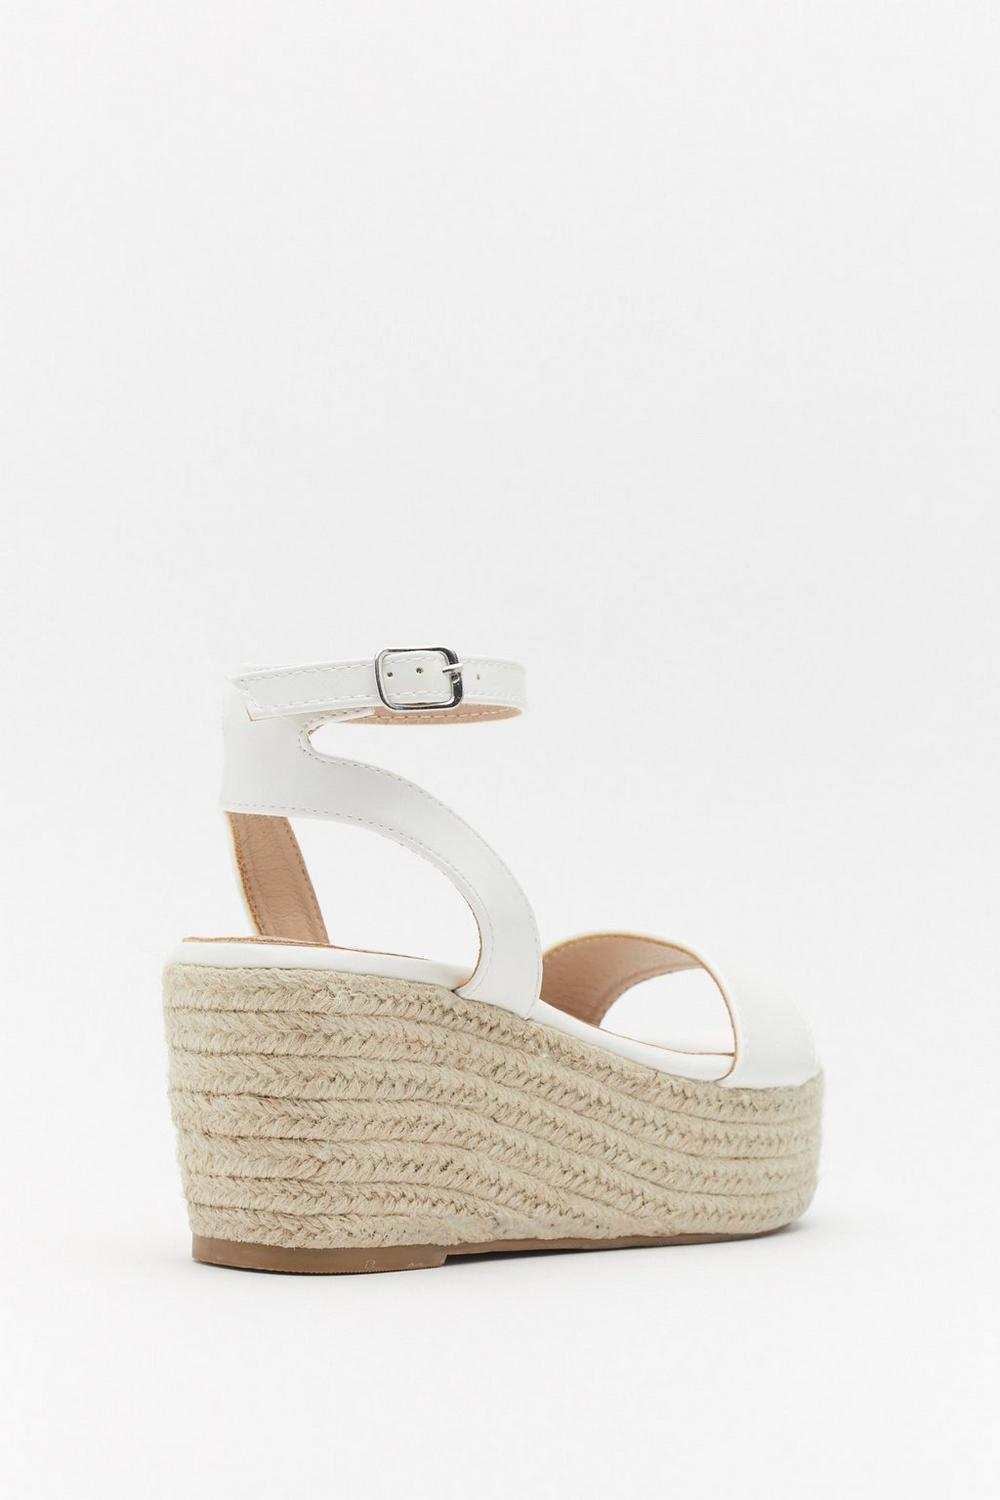 900df857d Up a Little Espadrille Wedge Sandals   Shop Clothes at Nasty Gal!